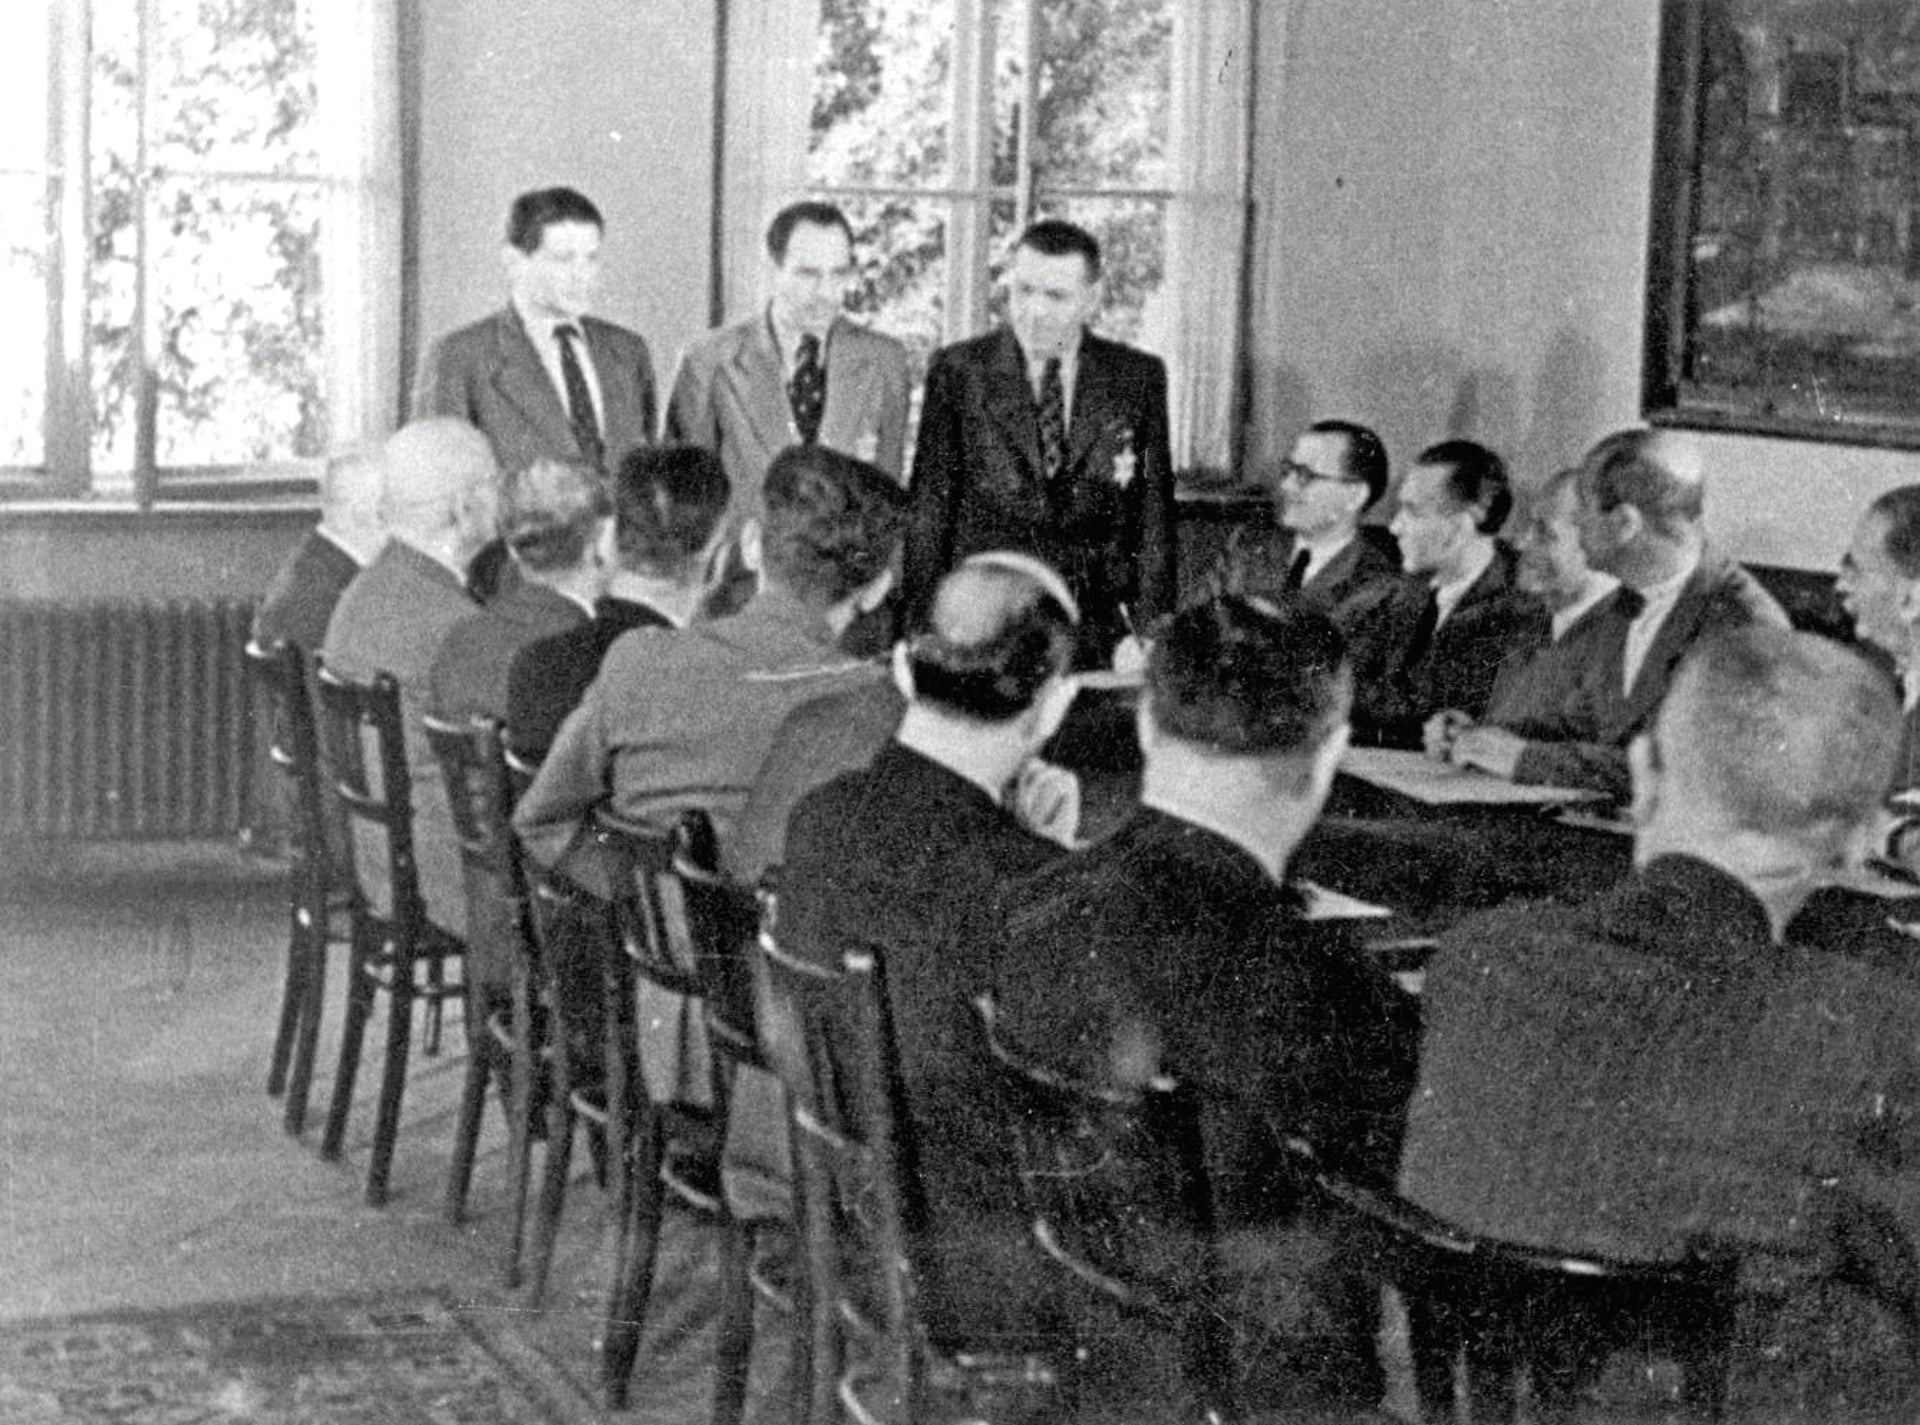 A meeting of the Theresienstadt Judenrat, in 1944.